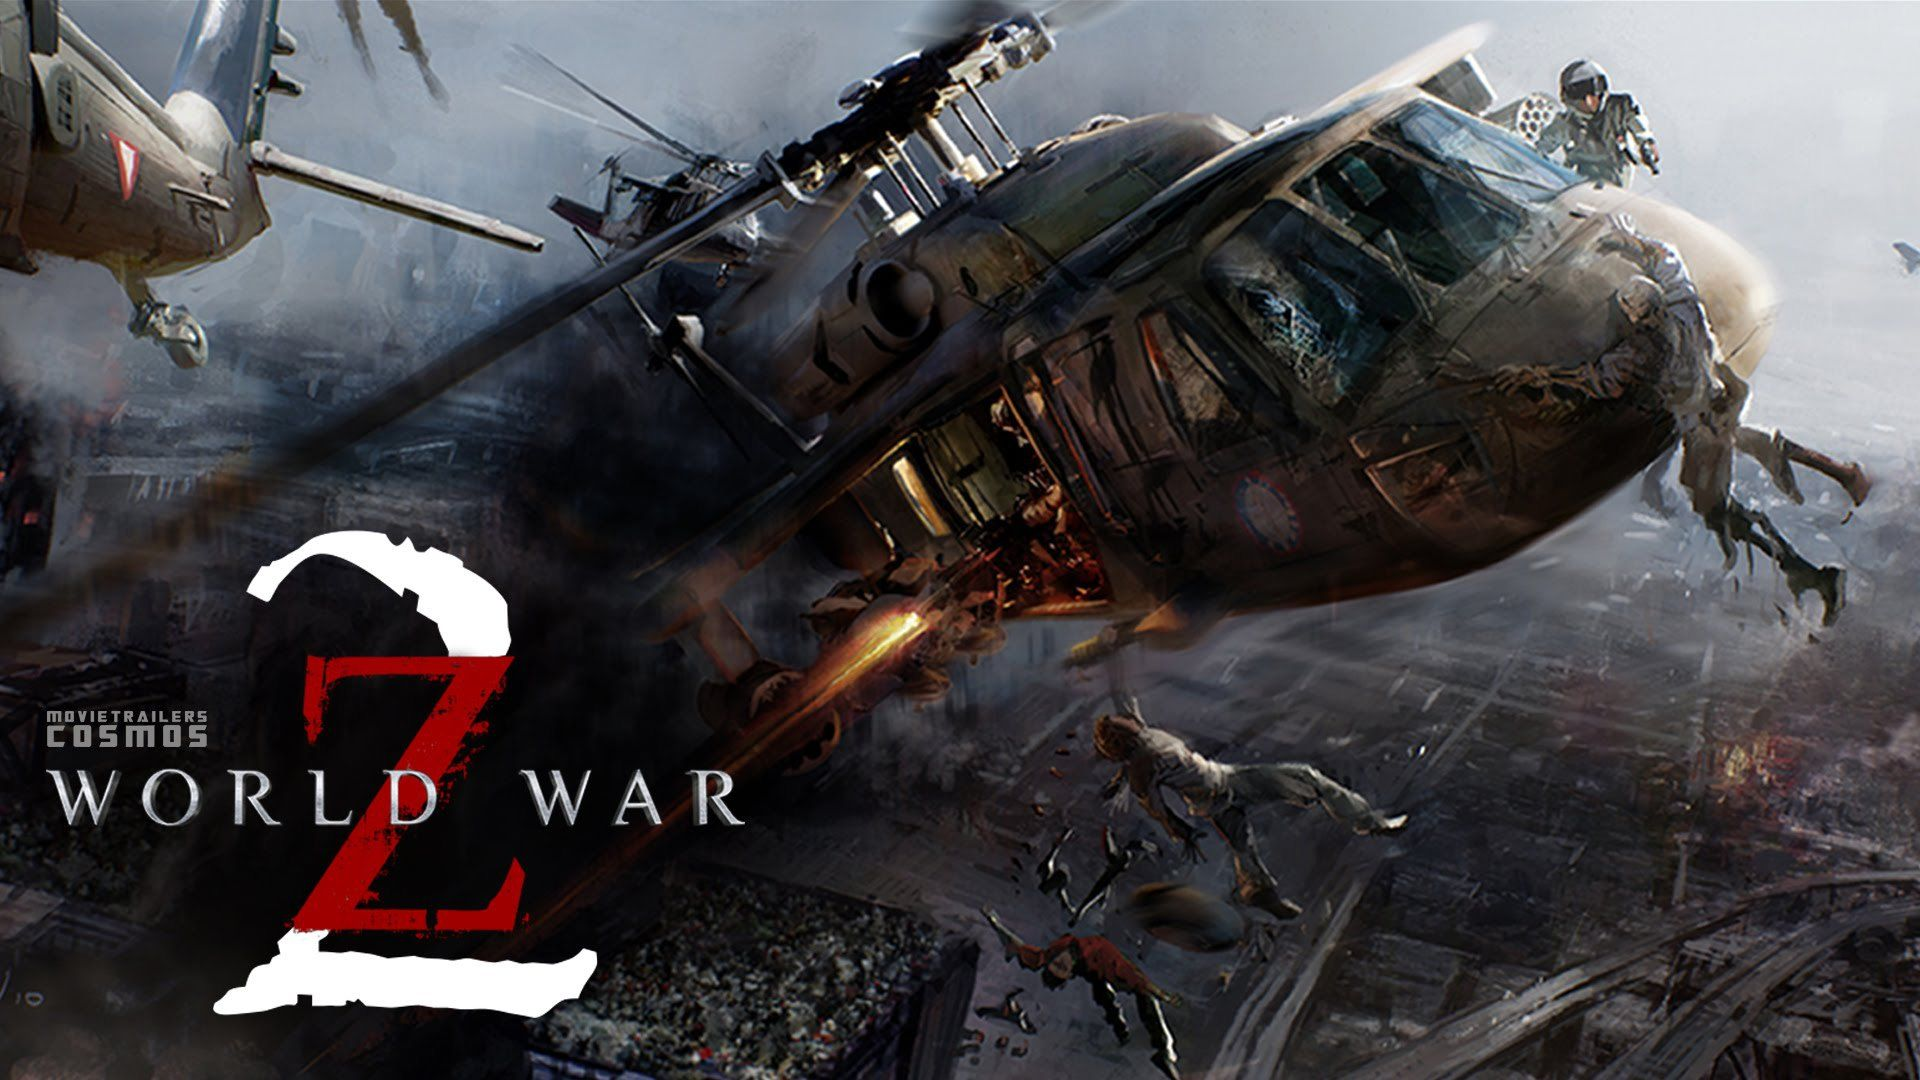 World War Z Wallpapers Top Free World War Z Backgrounds